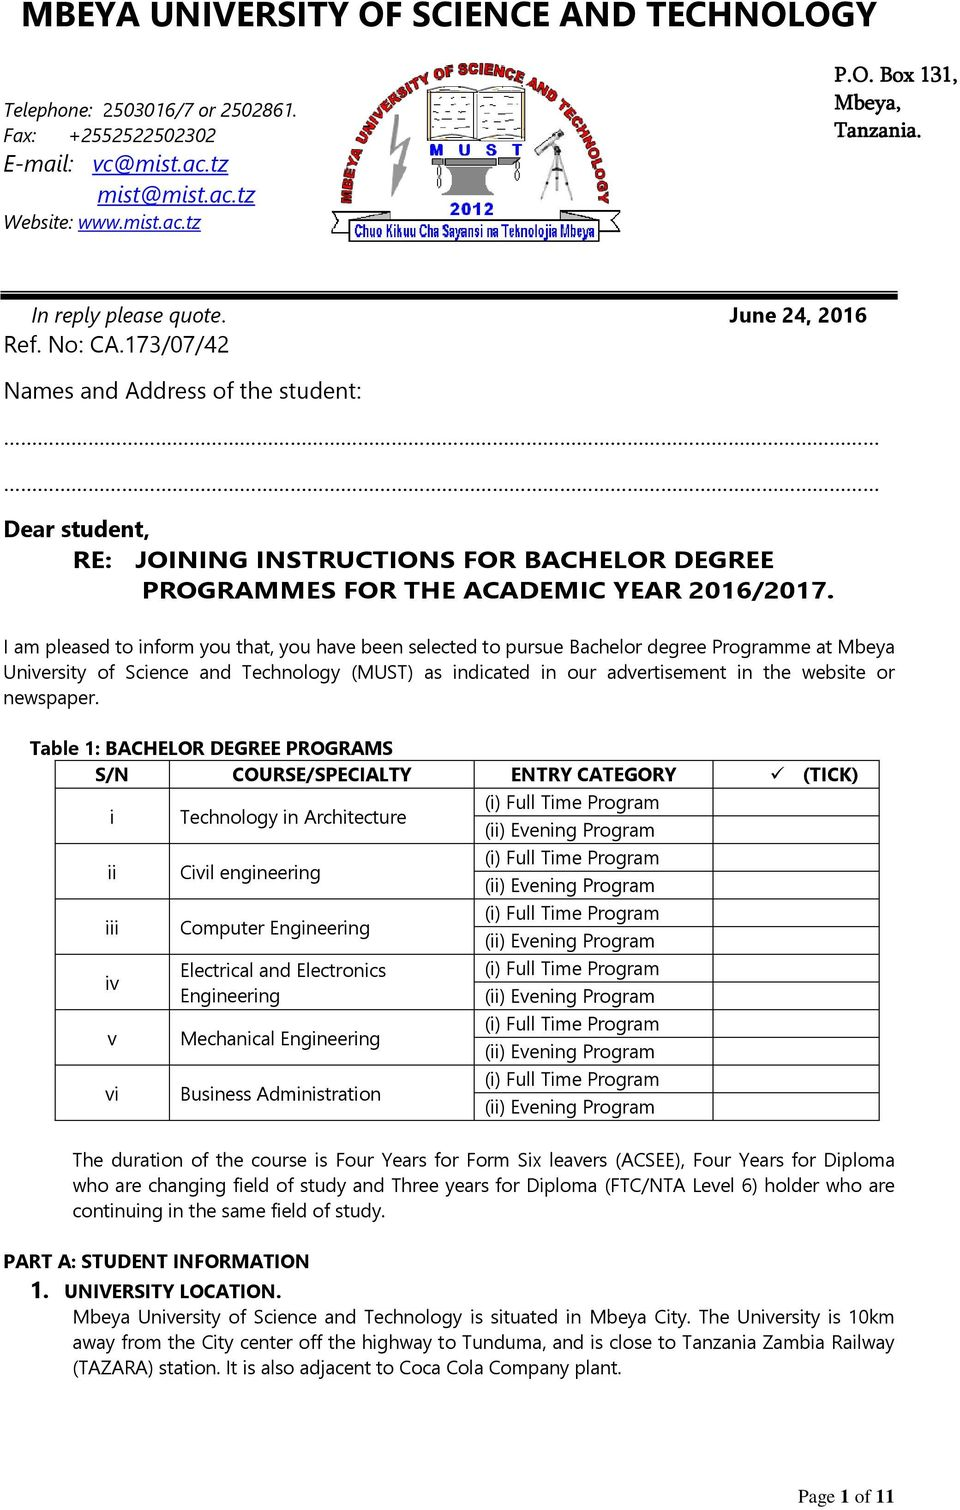 I am pleased to inform you that, you have been selected to pursue Bachelor degree Programme at Mbeya University of Science and Technology (MUST) as indicated in our advertisement in the website or